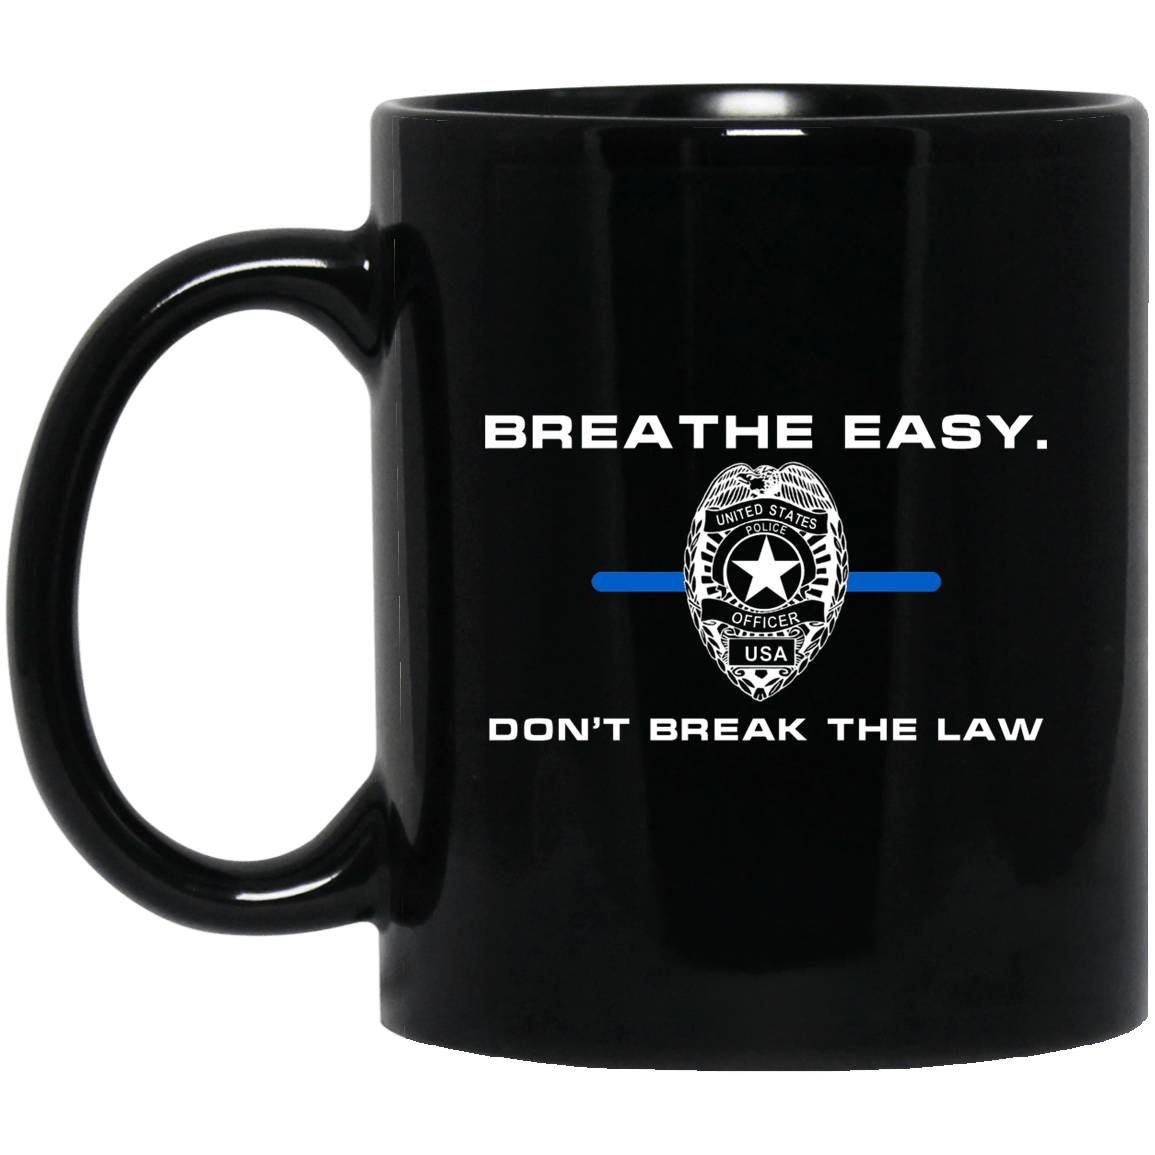 Breathe Easy Don't Break The Law Black Mug 1065-10181-93051336-49307 - Tee Ript